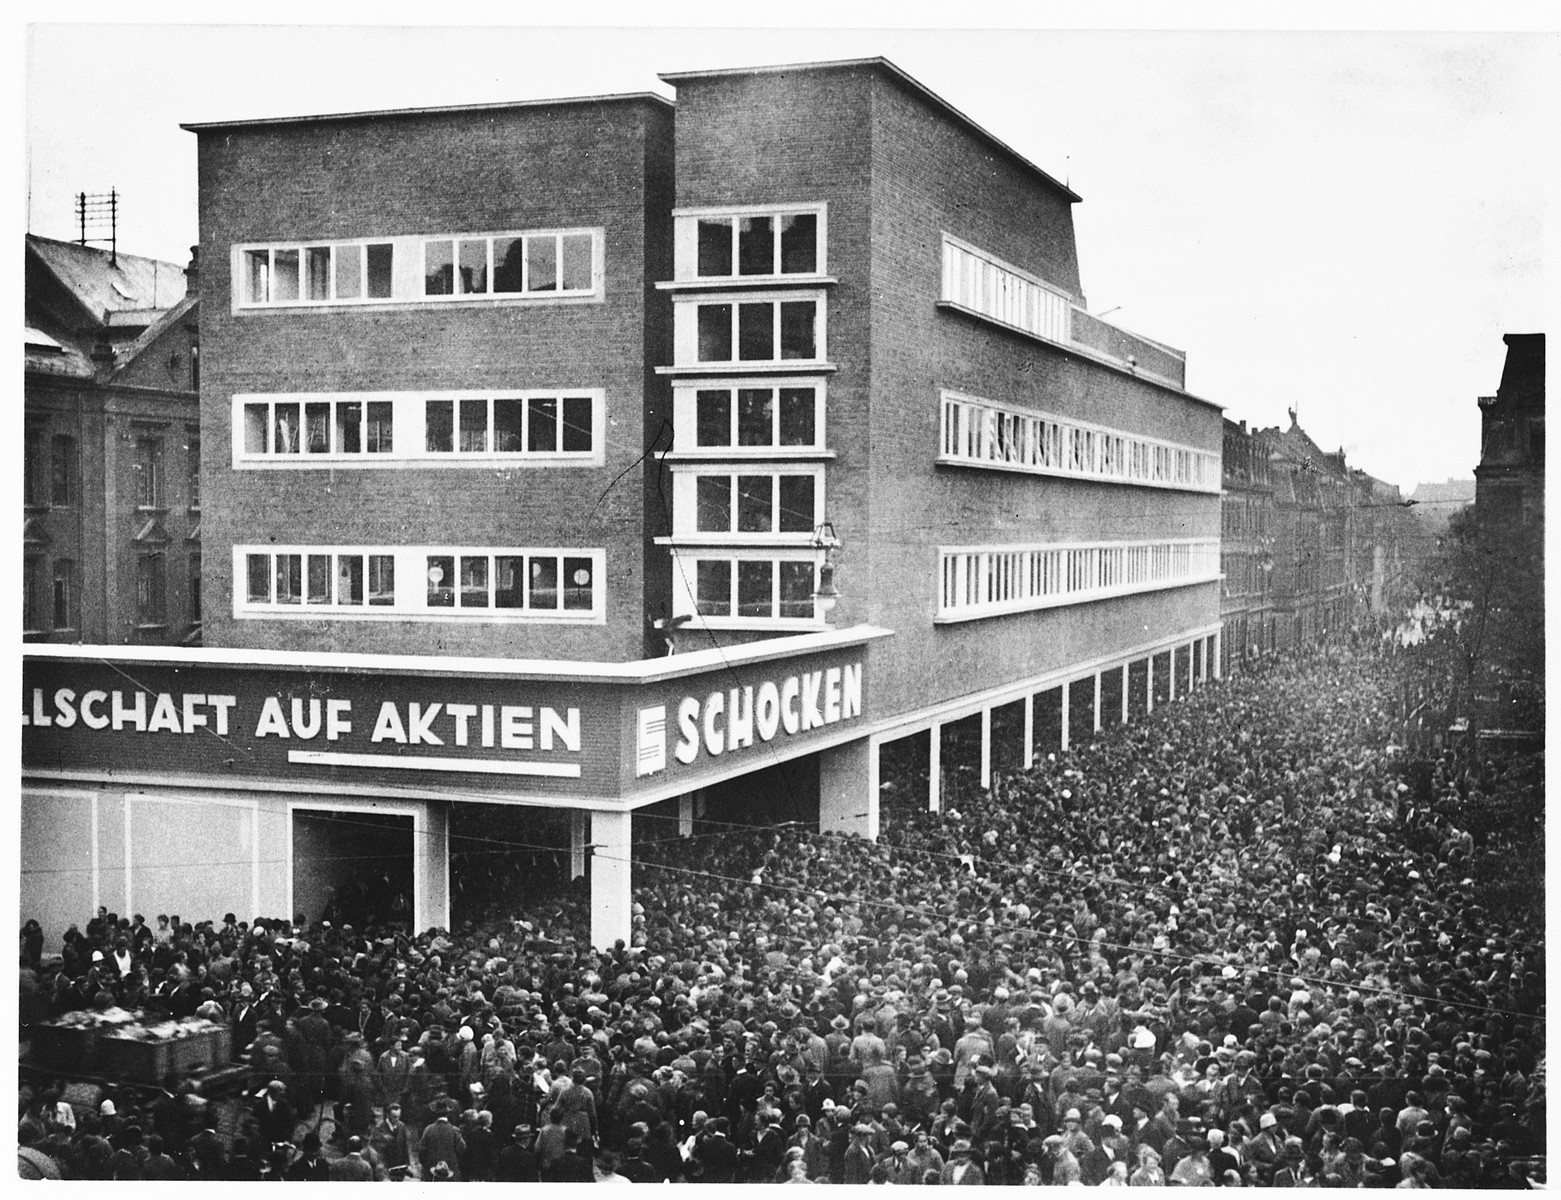 A huge crowd of people gather outside the Schocken department store in Nuremberg, Germany.